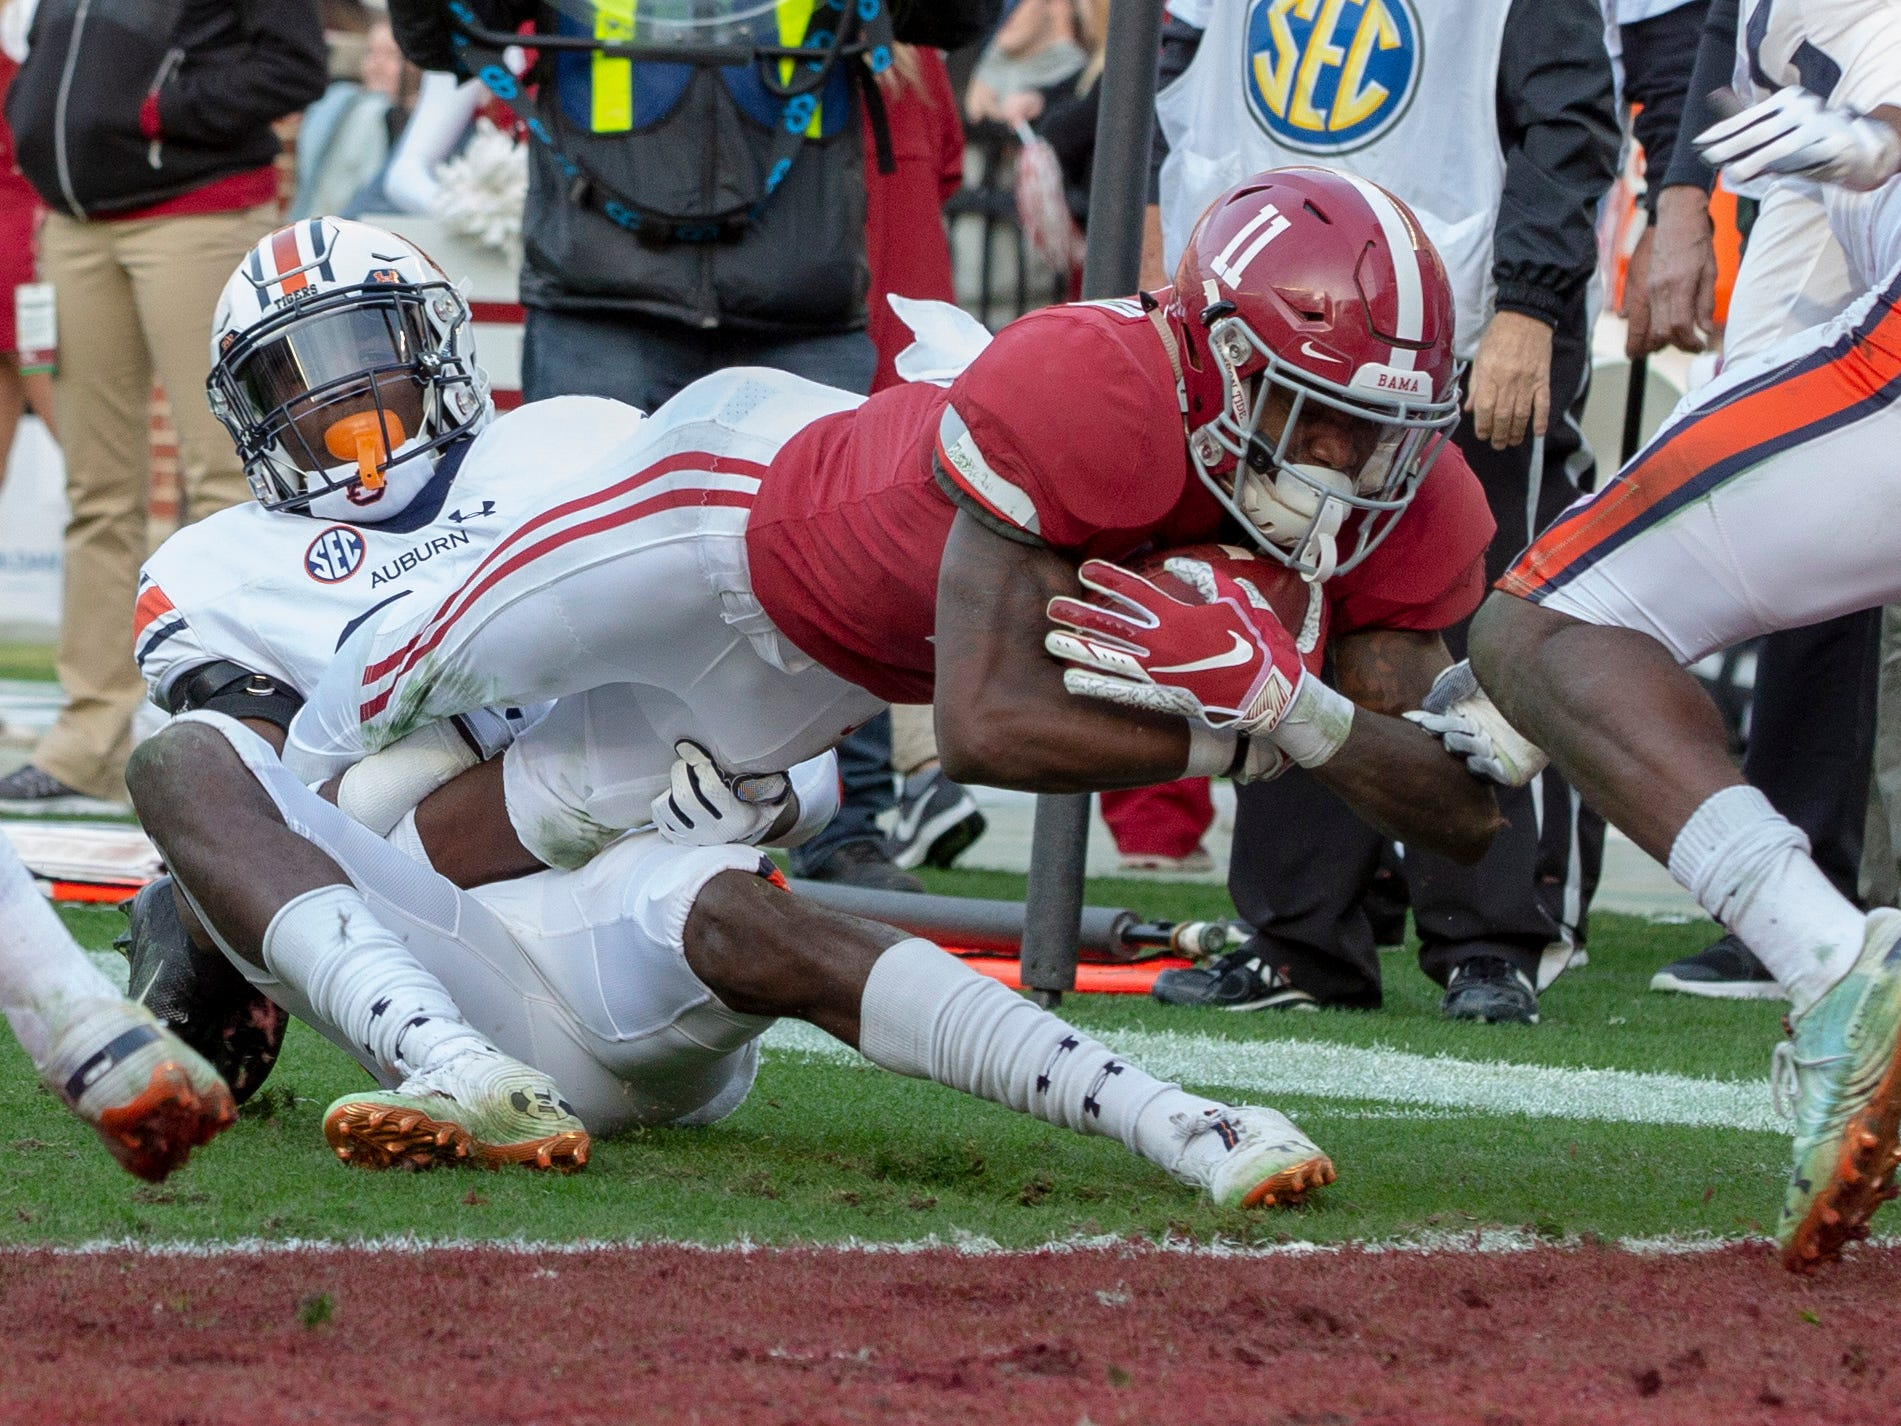 Alabama's Henry Ruggs III manages a touchdown in the second quarter as Auburn's Smoke Monday tries to take him down.